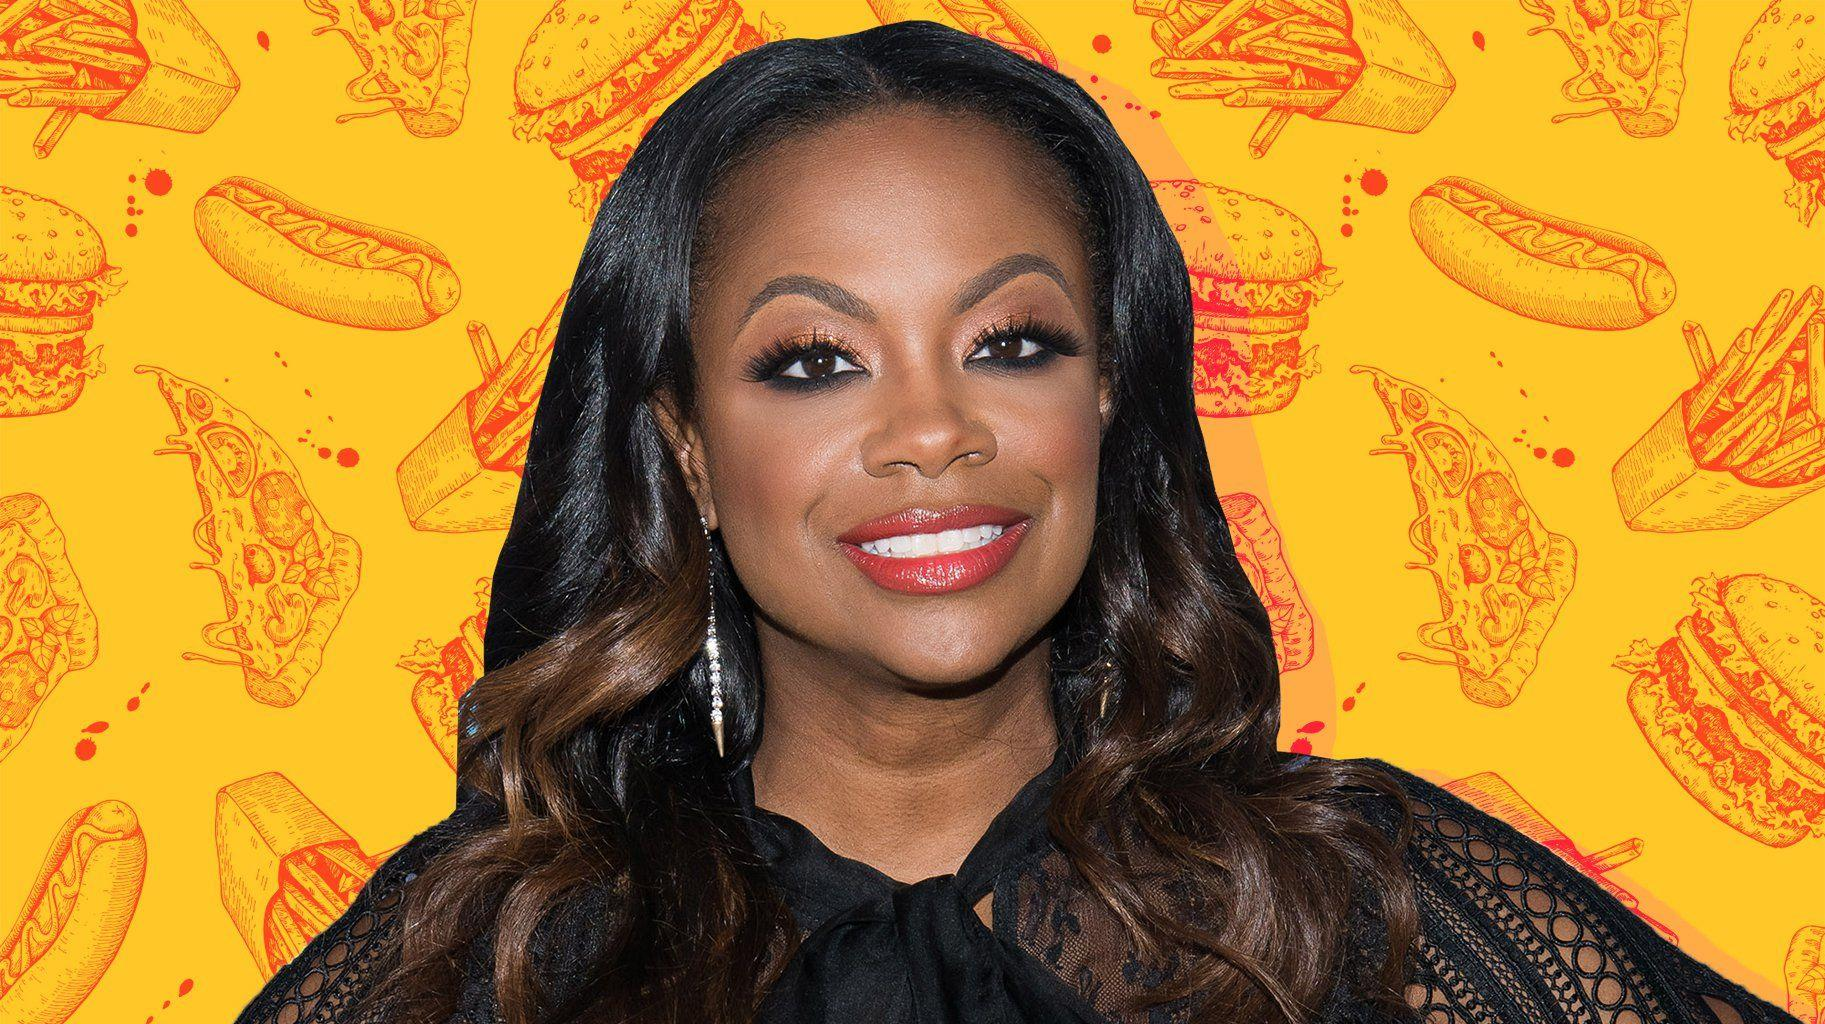 Kandi Burruss Makes Fans Happy With 'Old Lady Gang' At Your Door!